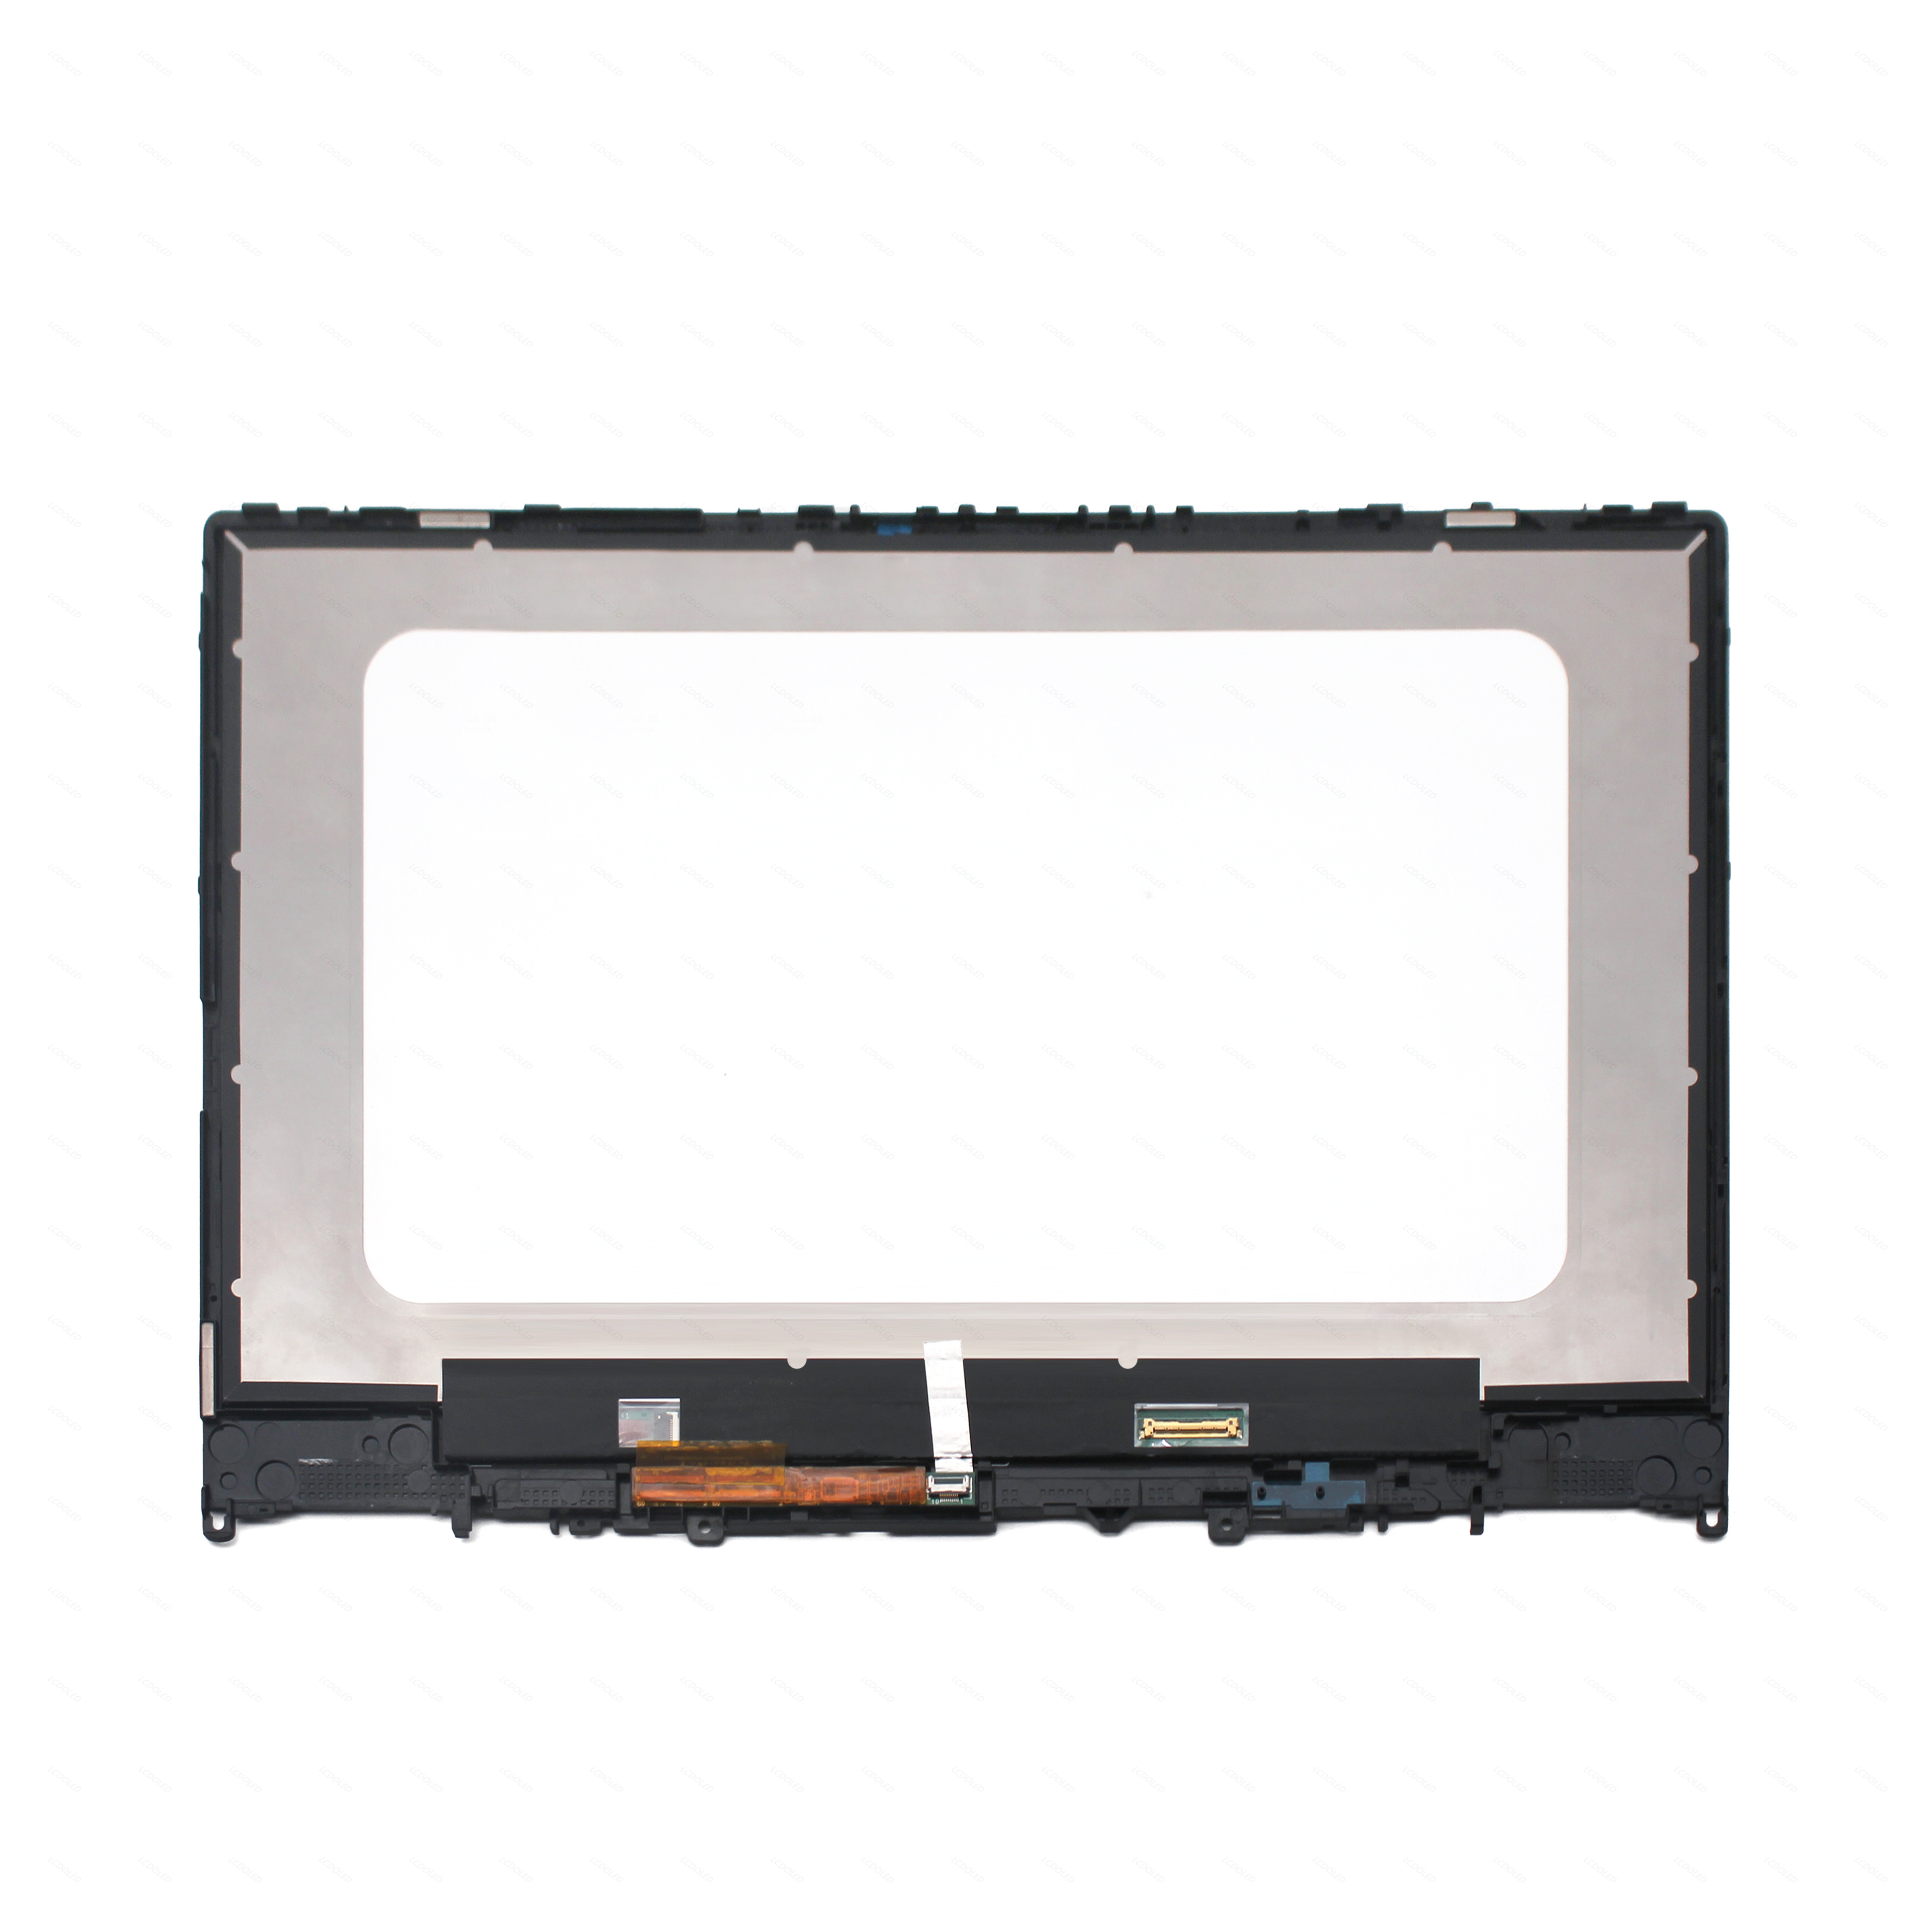 For Lenovo Yoga 530 14IKB 530 14ARR NT140WHM N43 5D10M42866 LCD Panel Display Screen Touch Glass